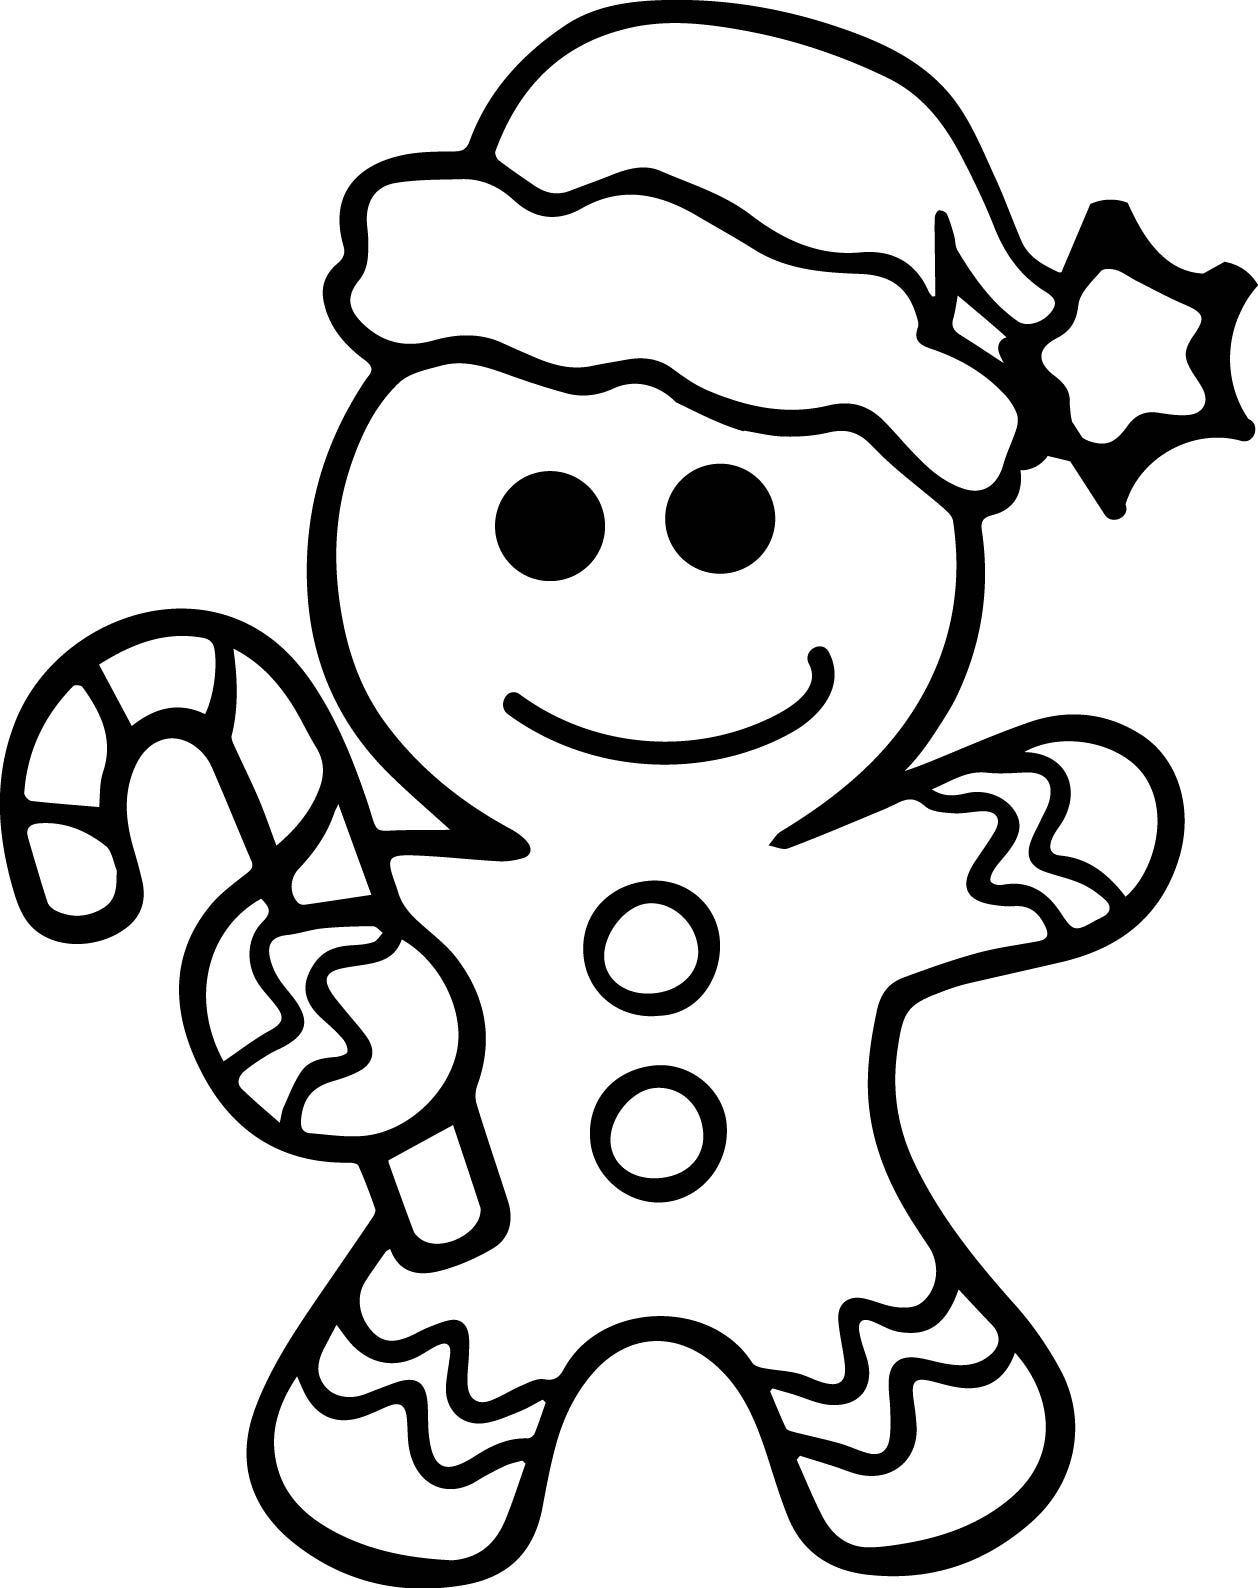 gingerbread man coloring pages printable free printable gingerbread man coloring pages for kids printable pages coloring gingerbread man